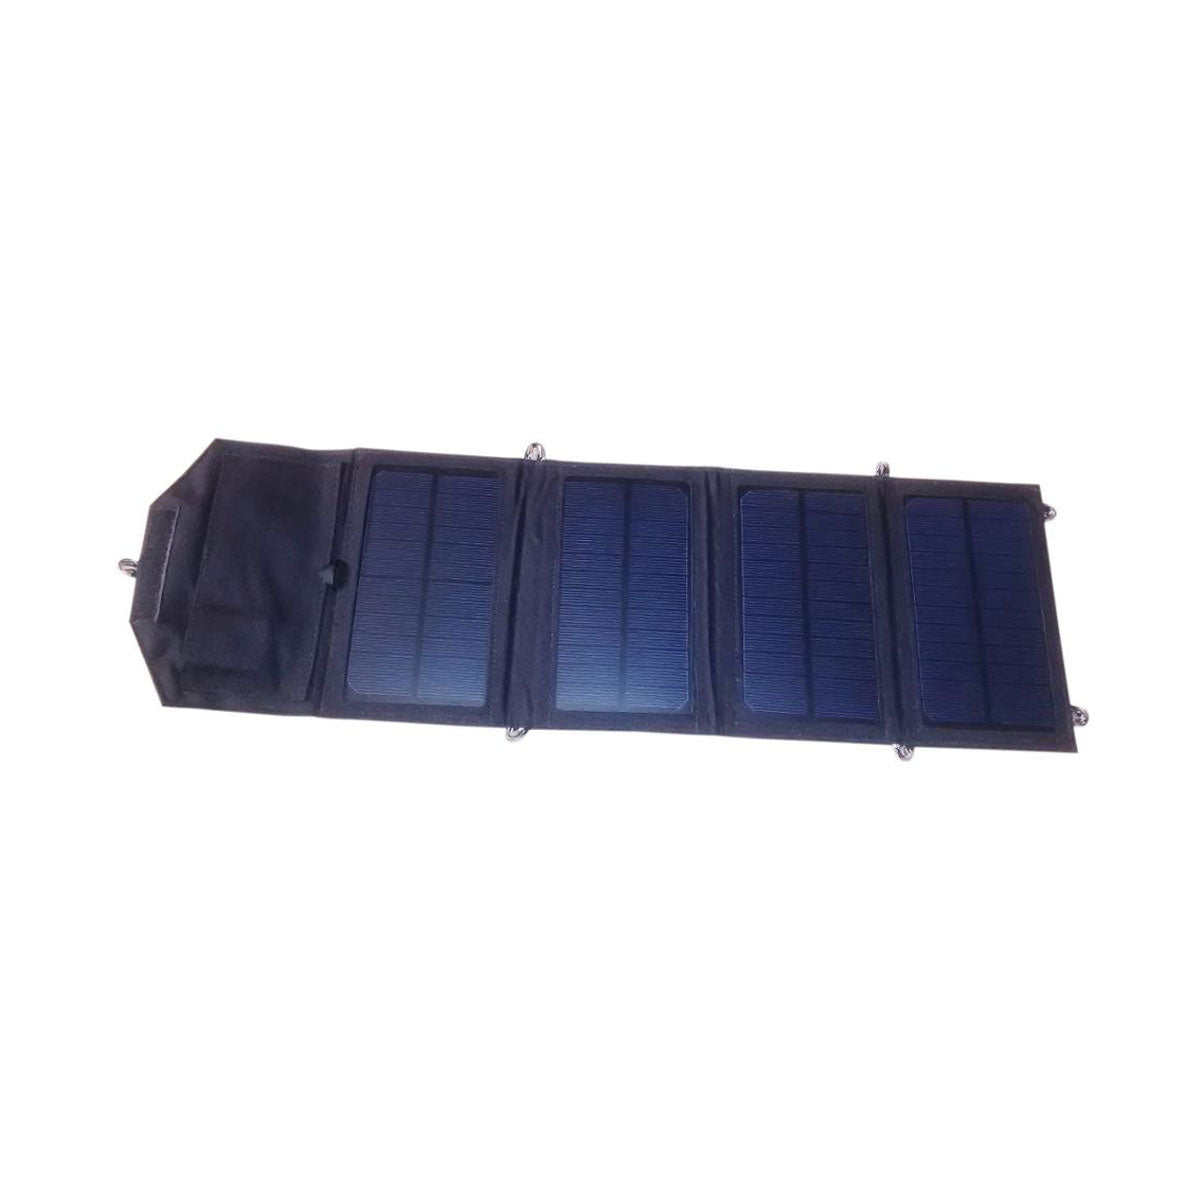 Portable USB Solar Panel Charger for the Outdoors